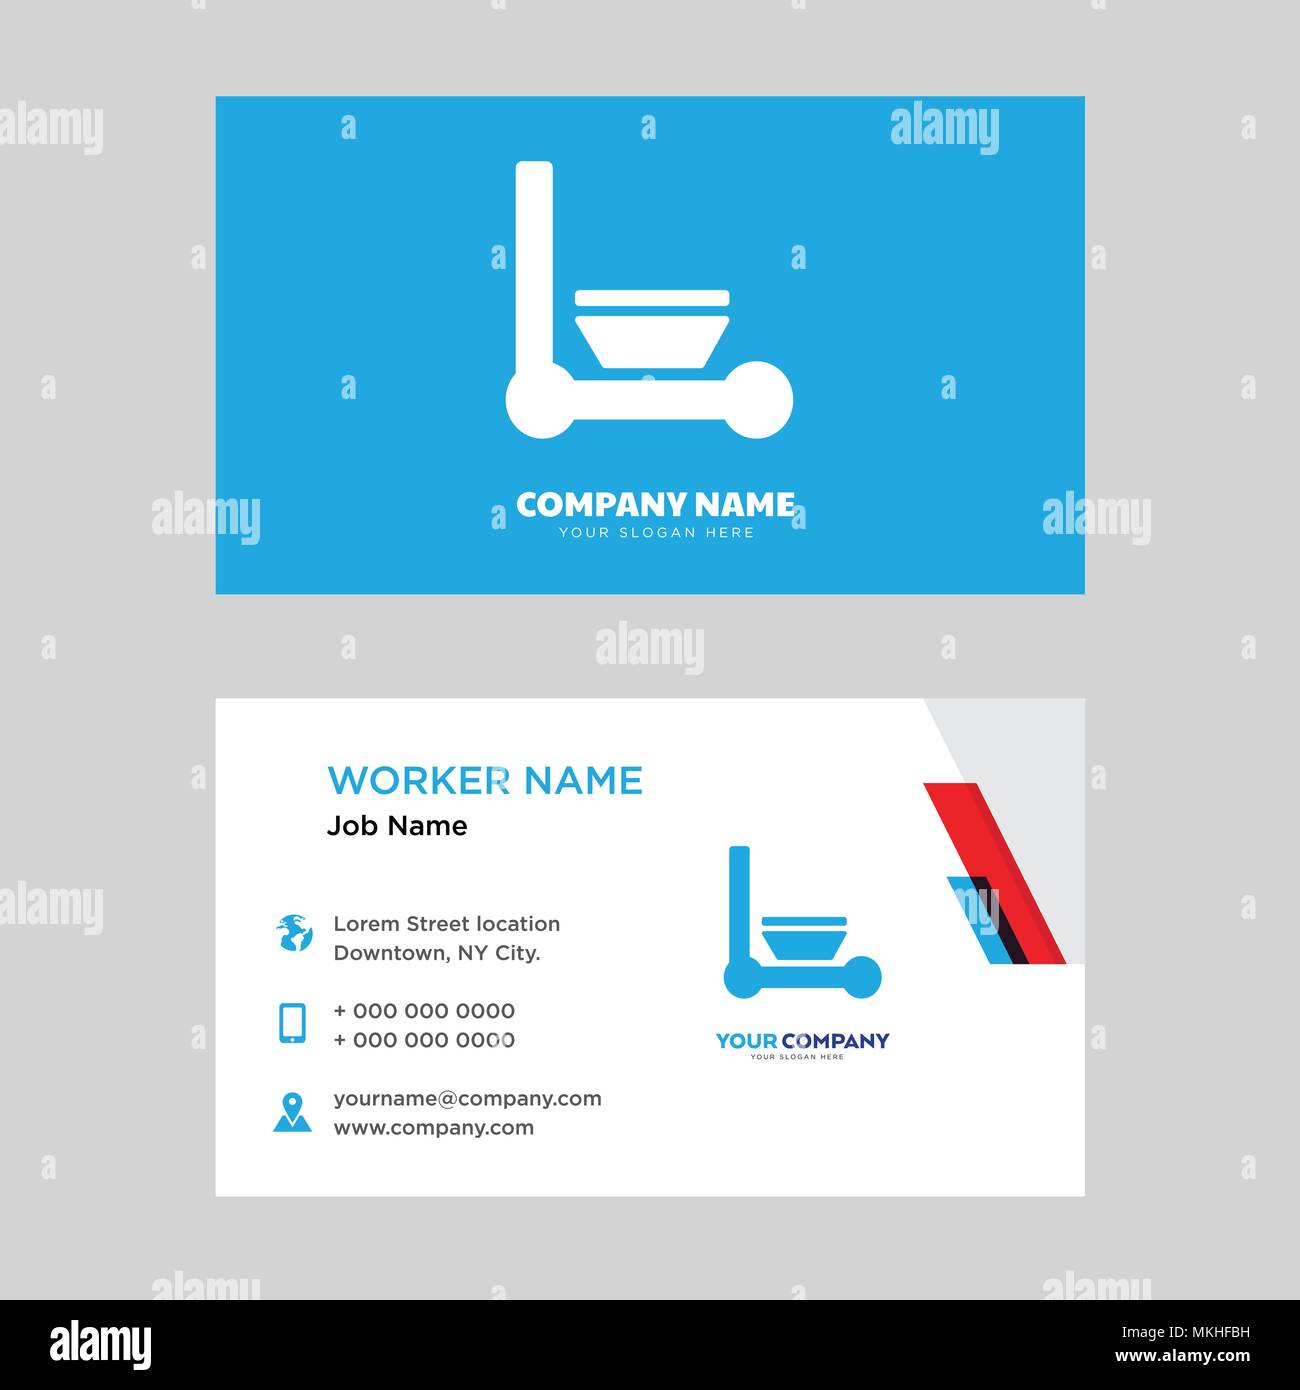 Cleaning business card design template visiting for your company cleaning business card design template visiting for your company modern horizontal identity card vector cheaphphosting Gallery